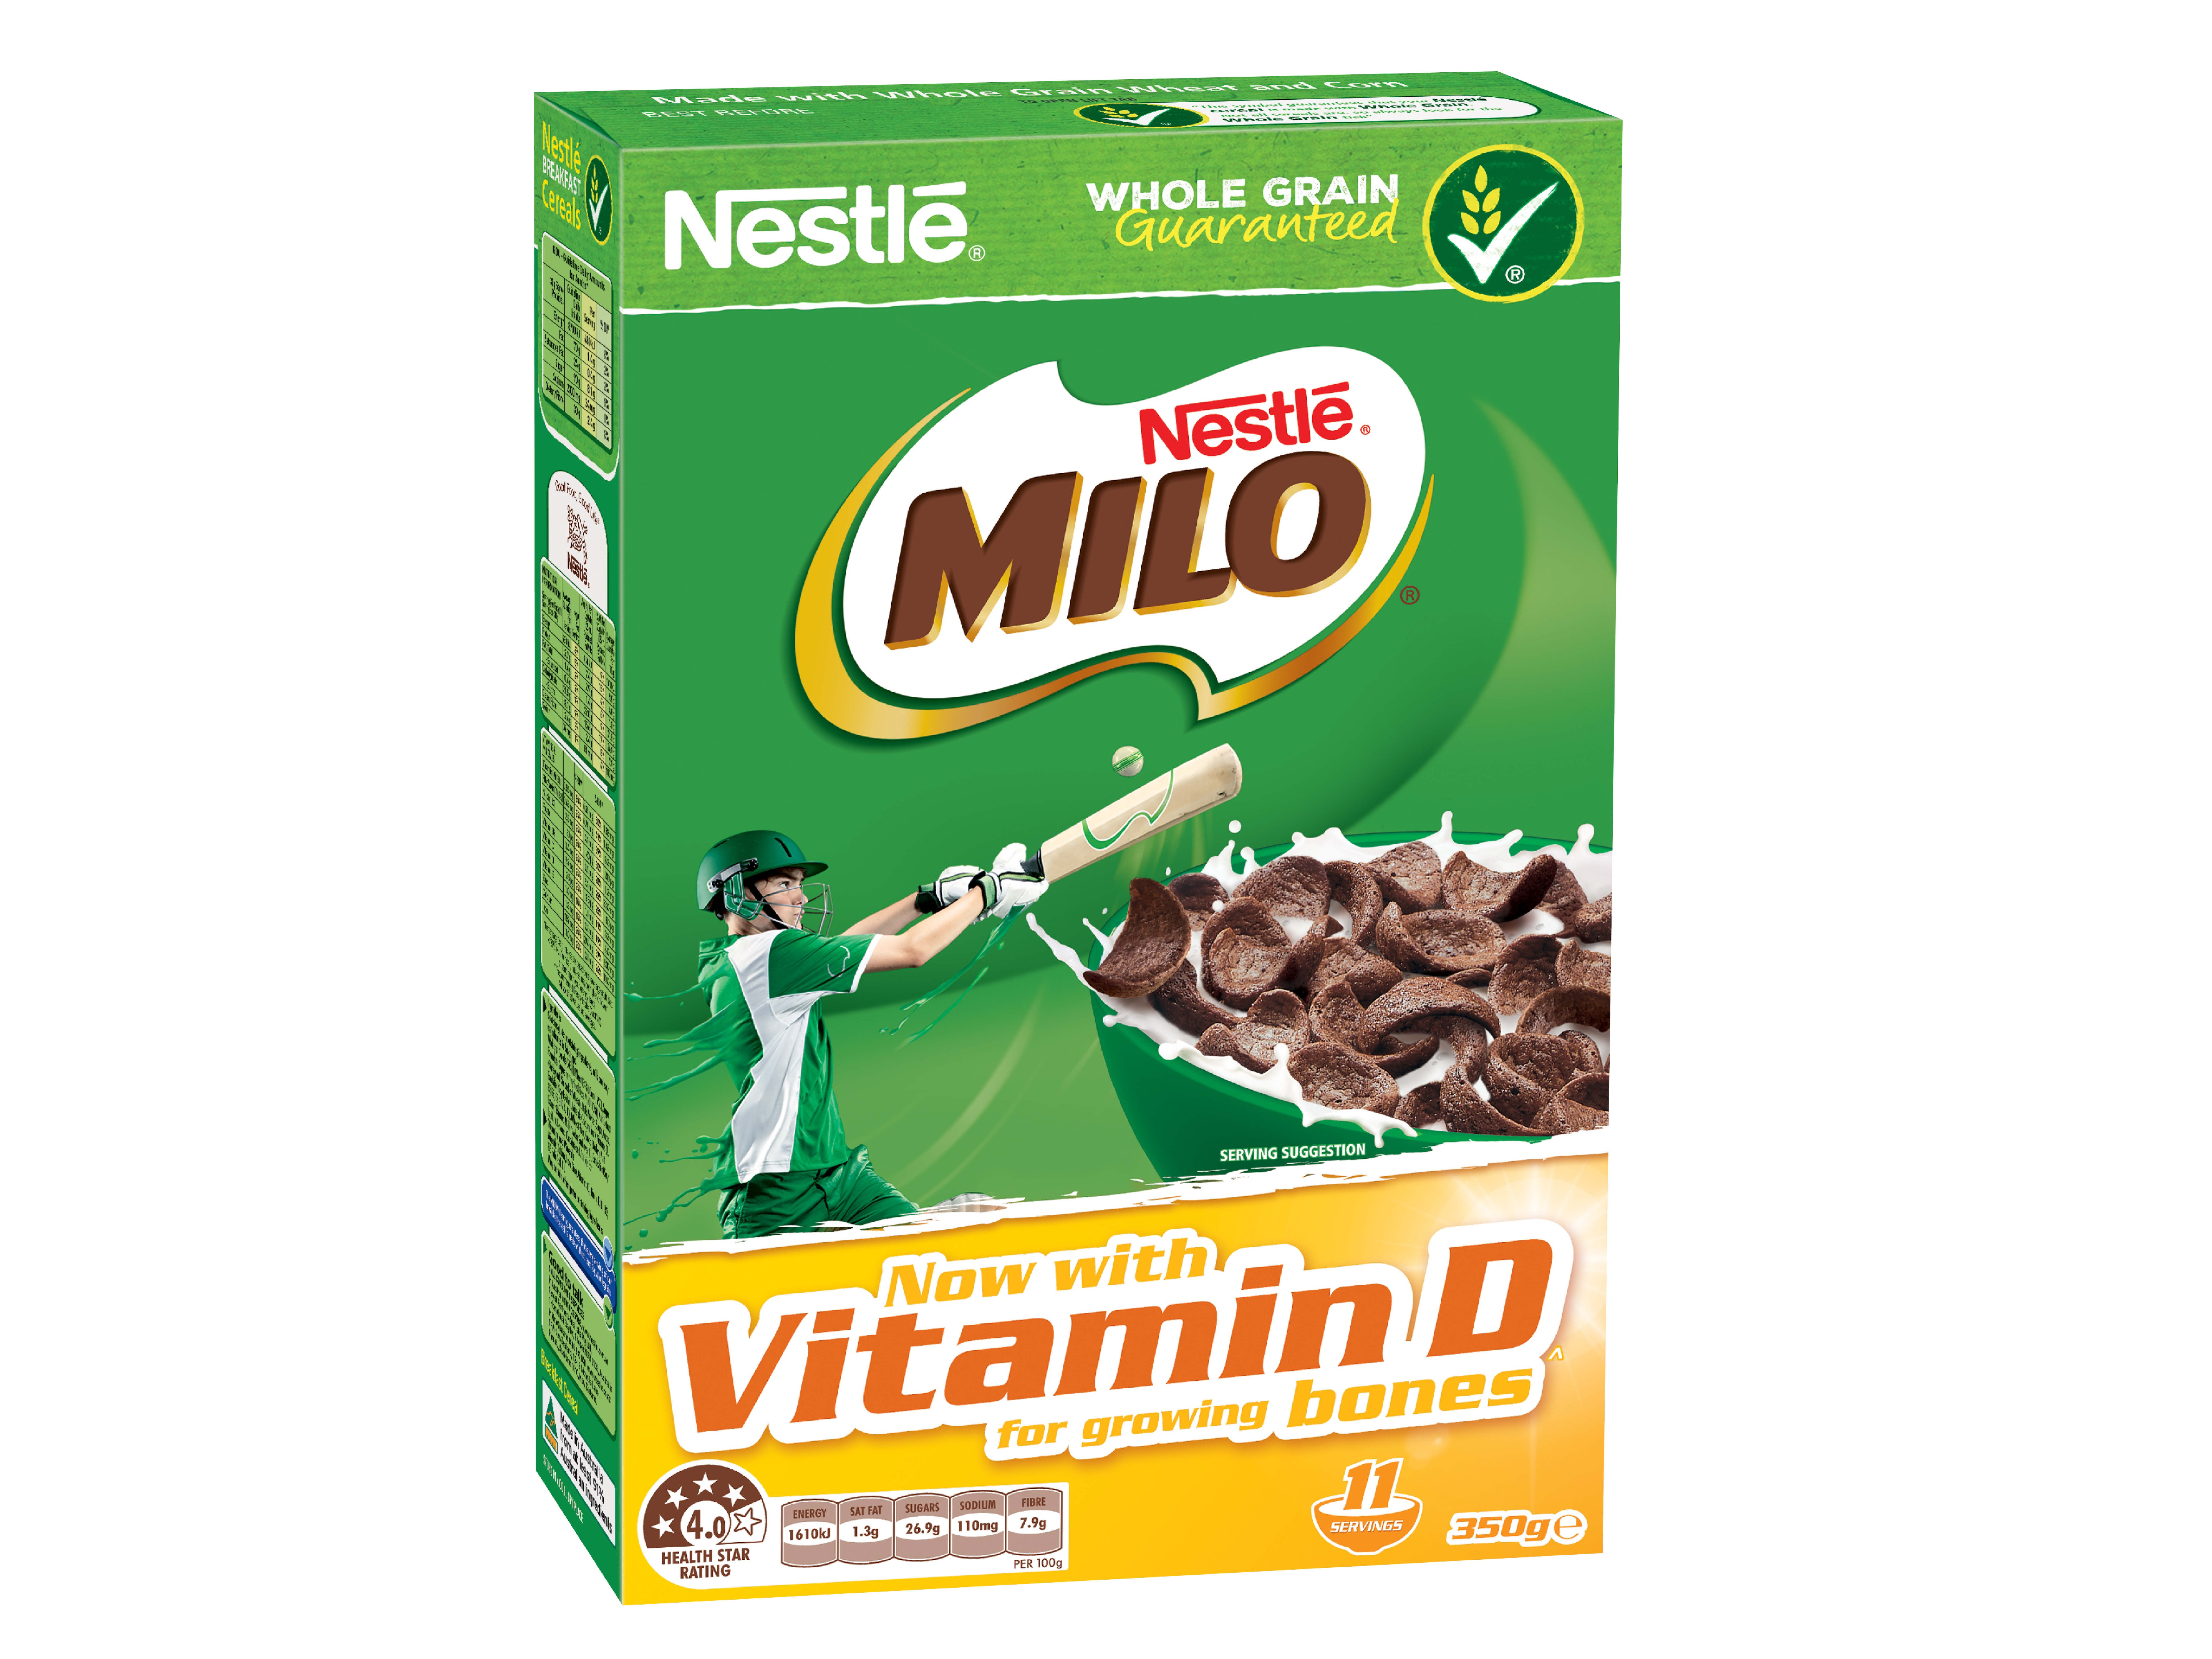 Milo pack sweepstakes